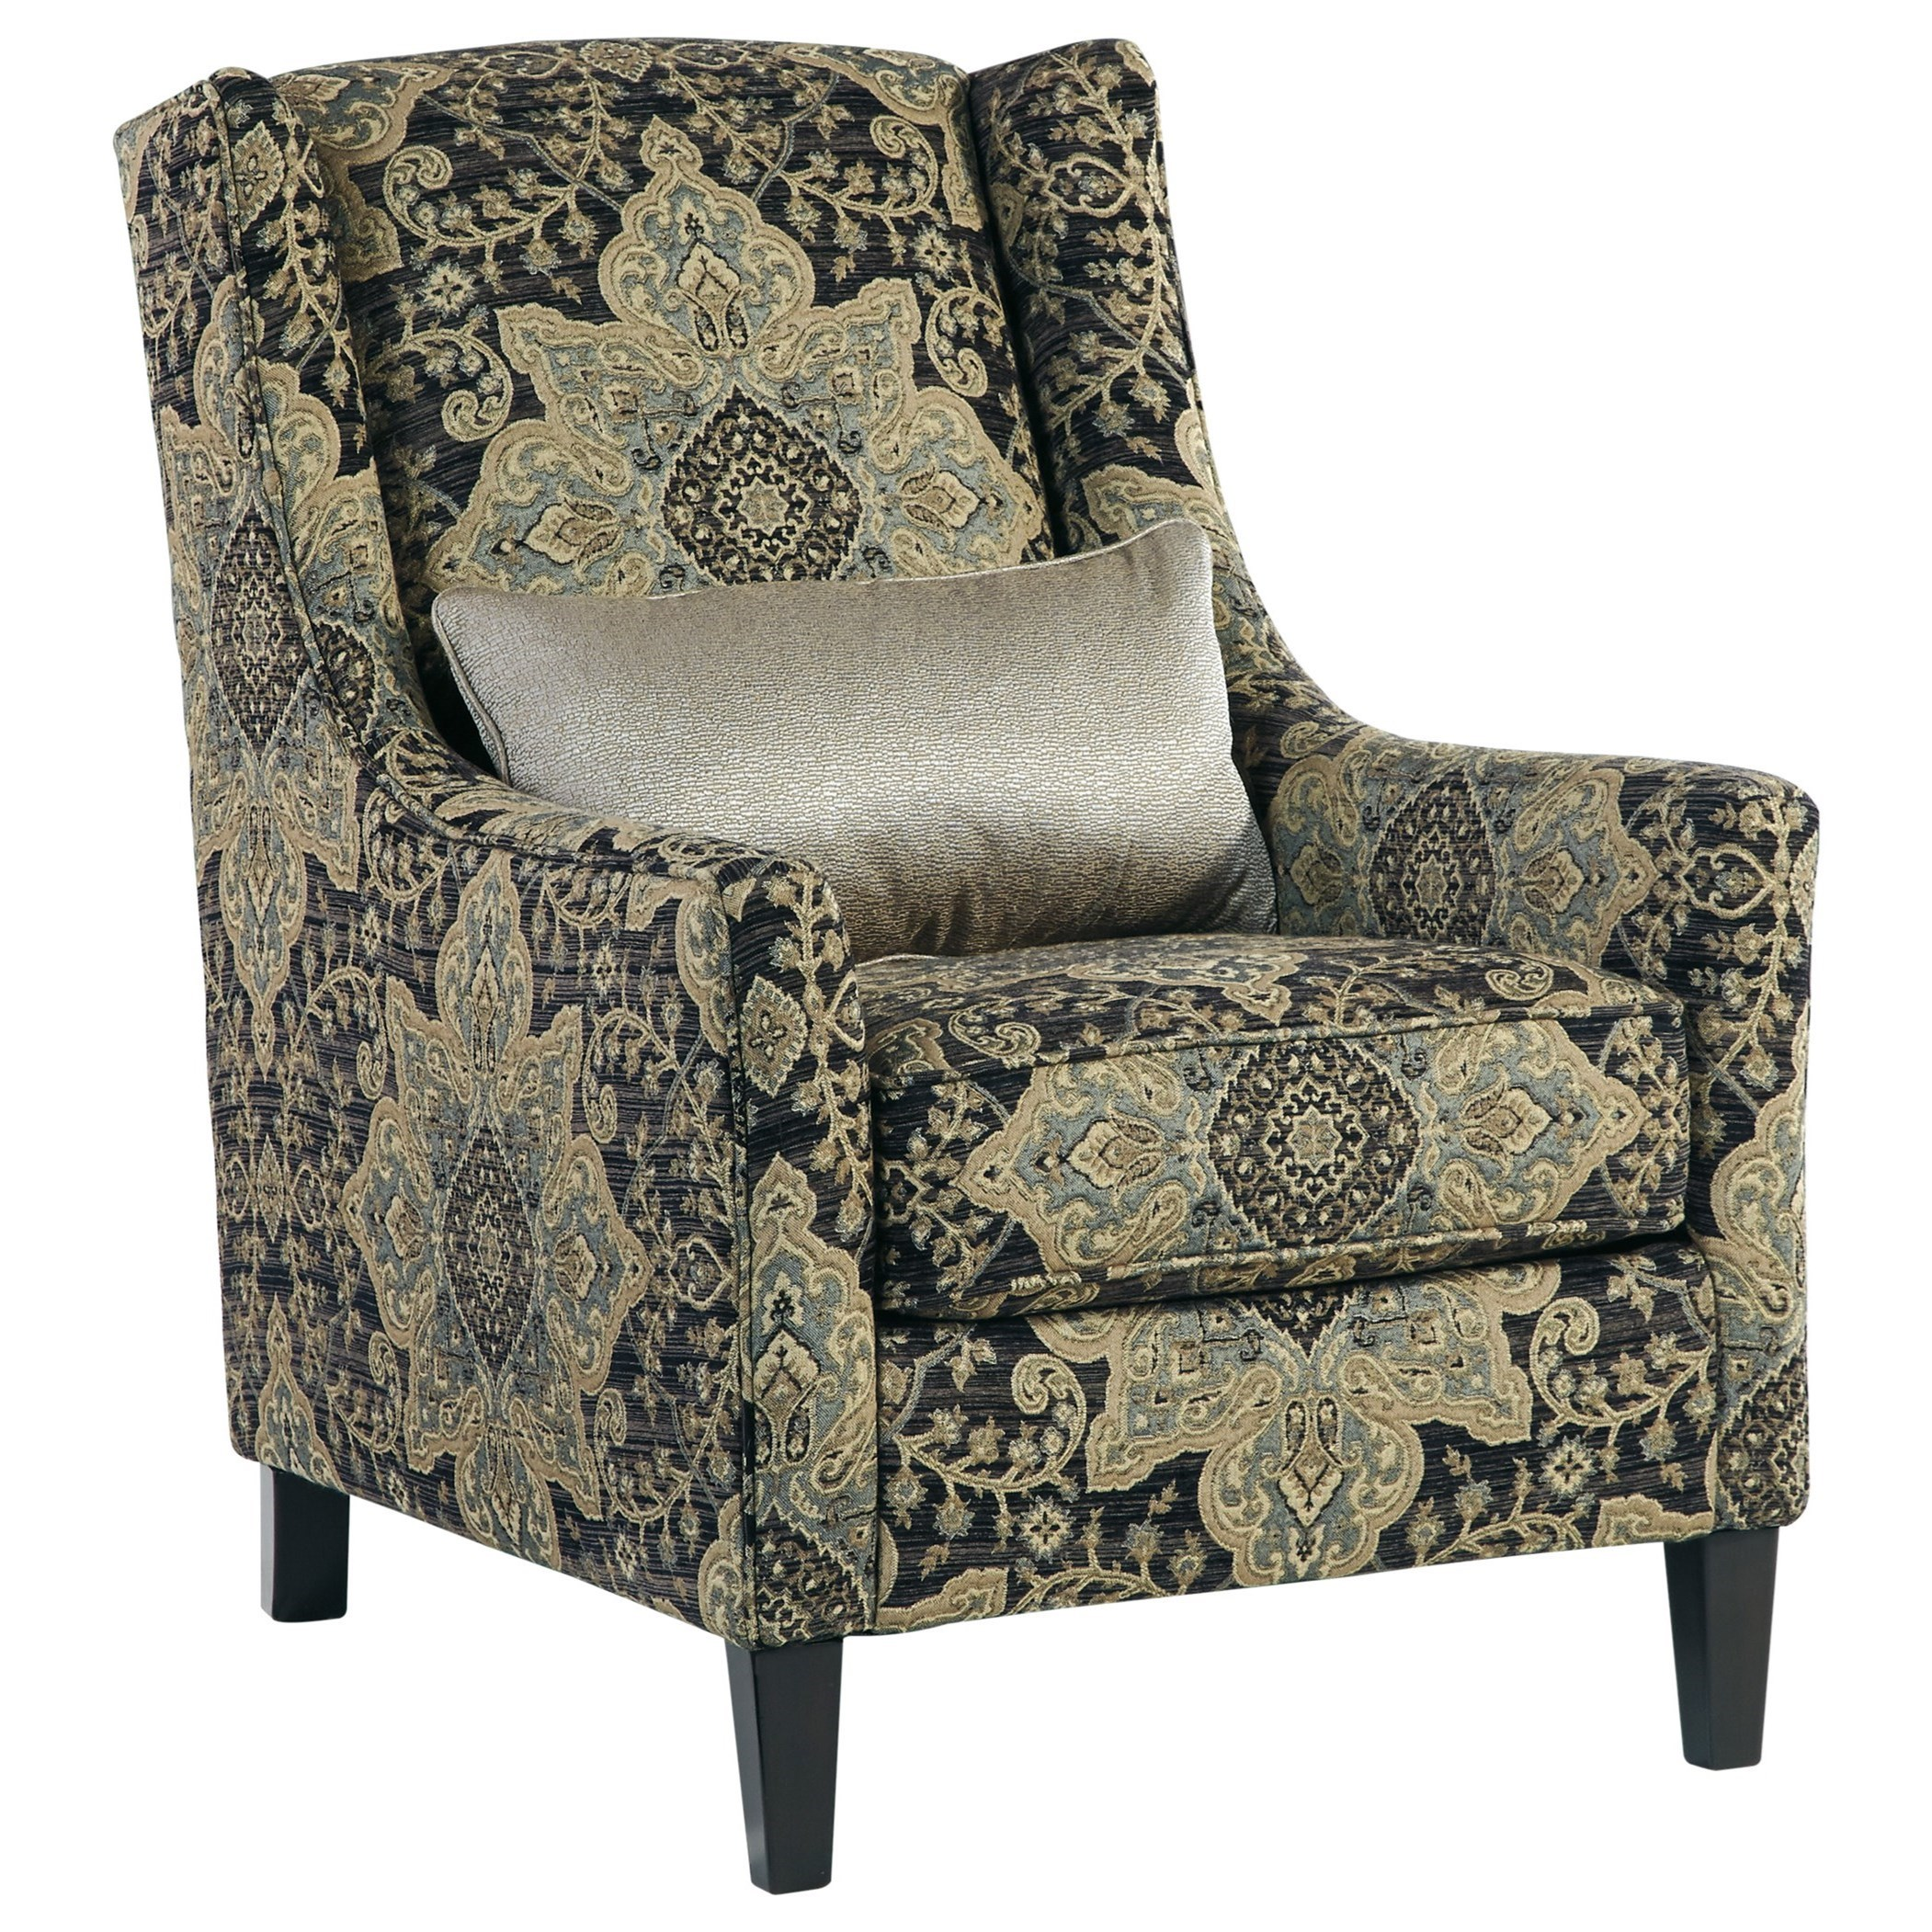 Ashley furniture hartigan 6250121 accent chair with wing for Ashley furniture appleton